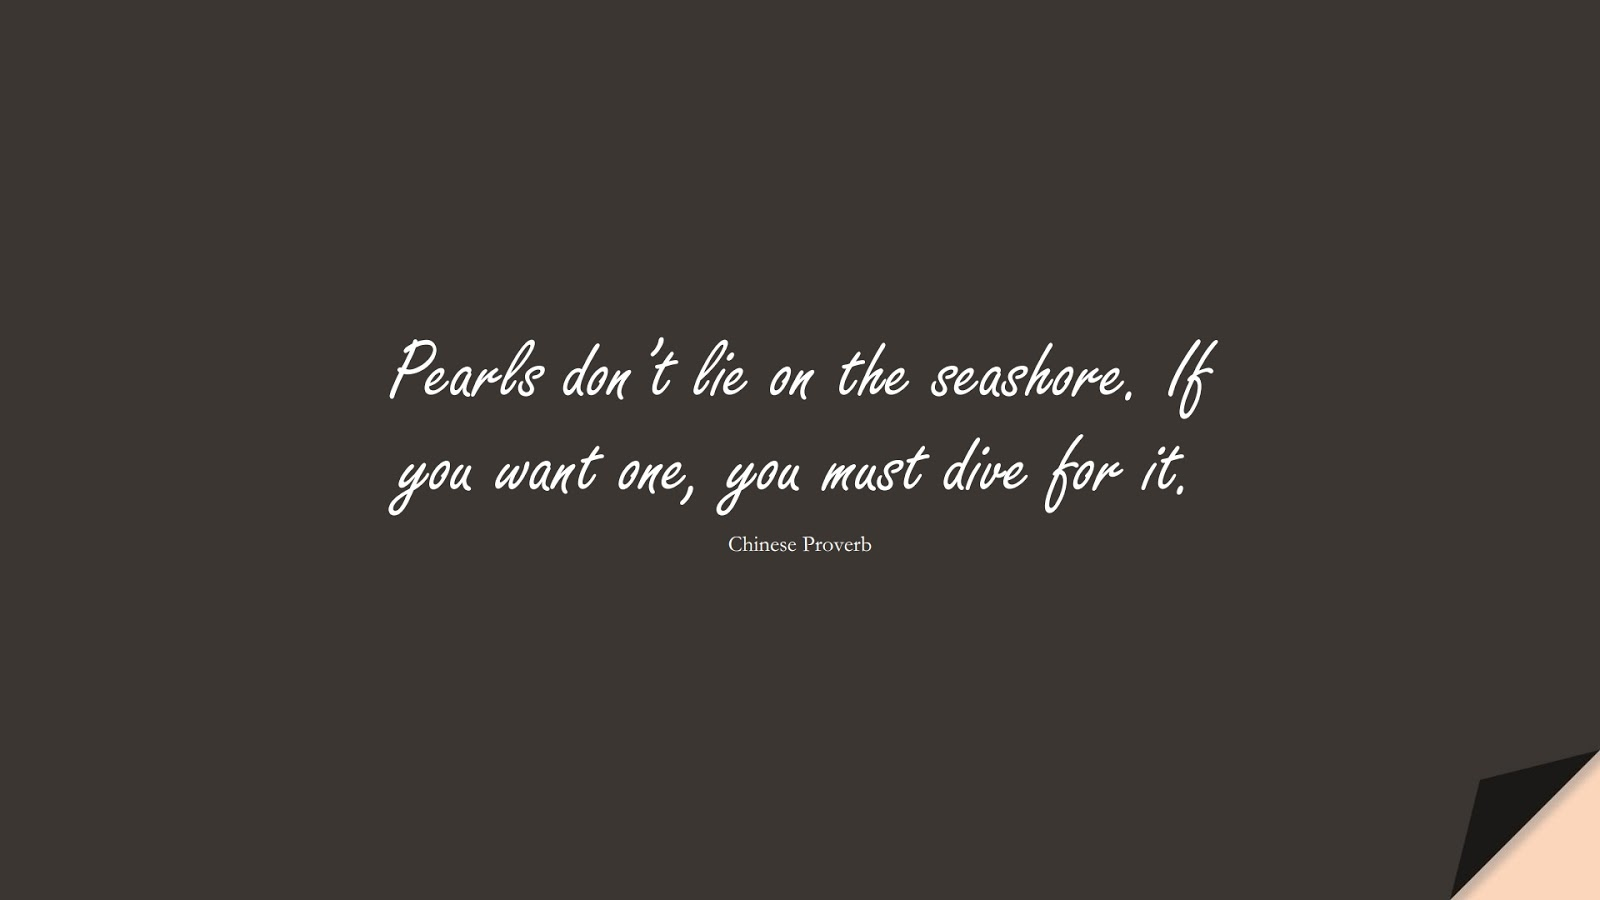 Pearls don't lie on the seashore. If you want one, you must dive for it. (Chinese Proverb);  #SuccessQuotes